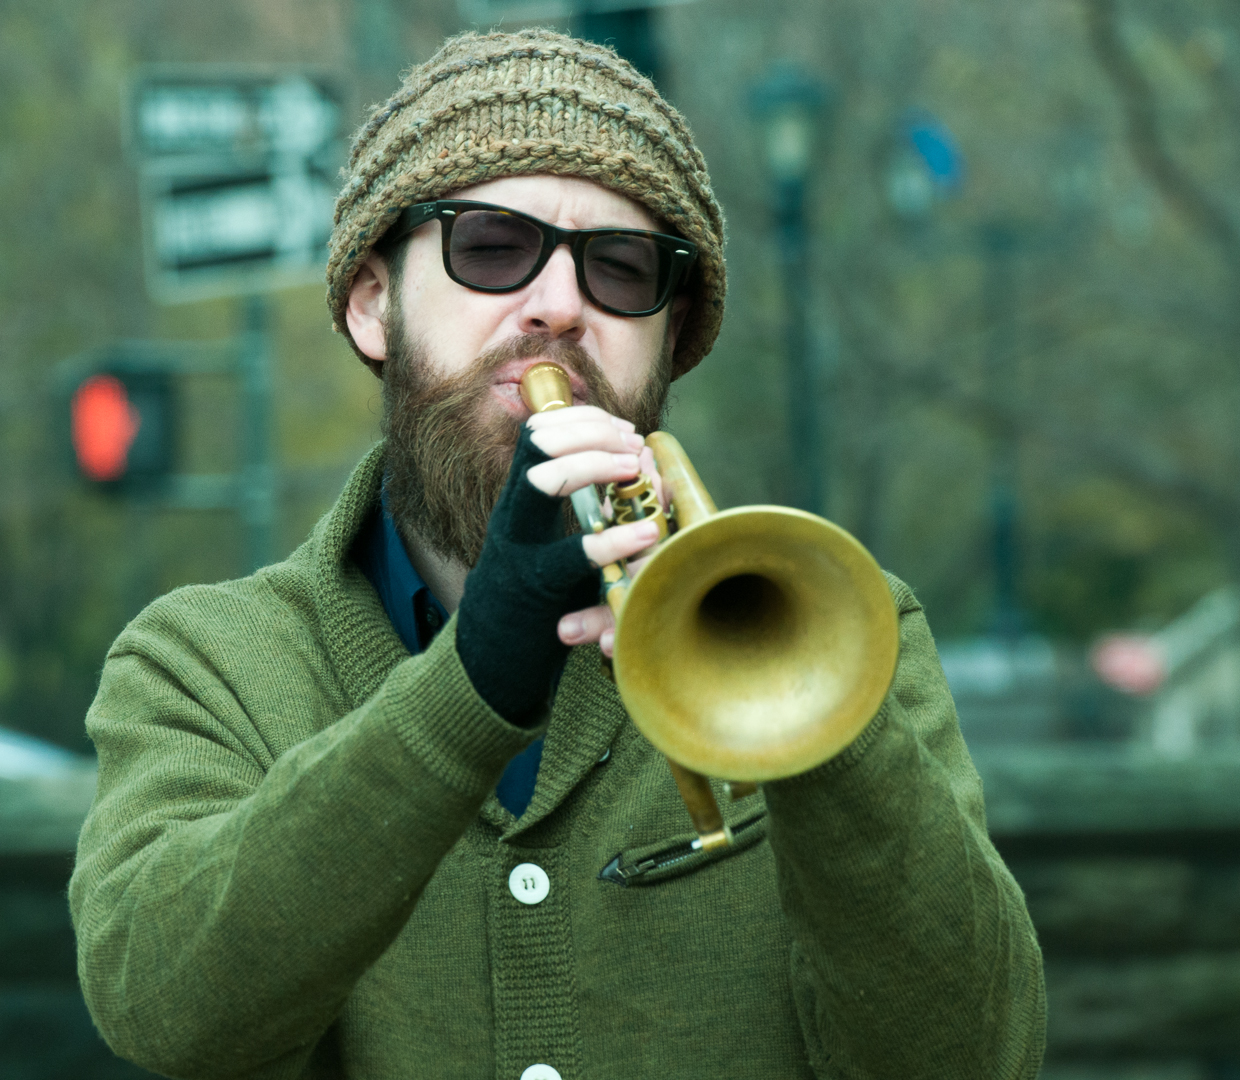 Kirk Knuffke at Jazz and Colors in Central Park